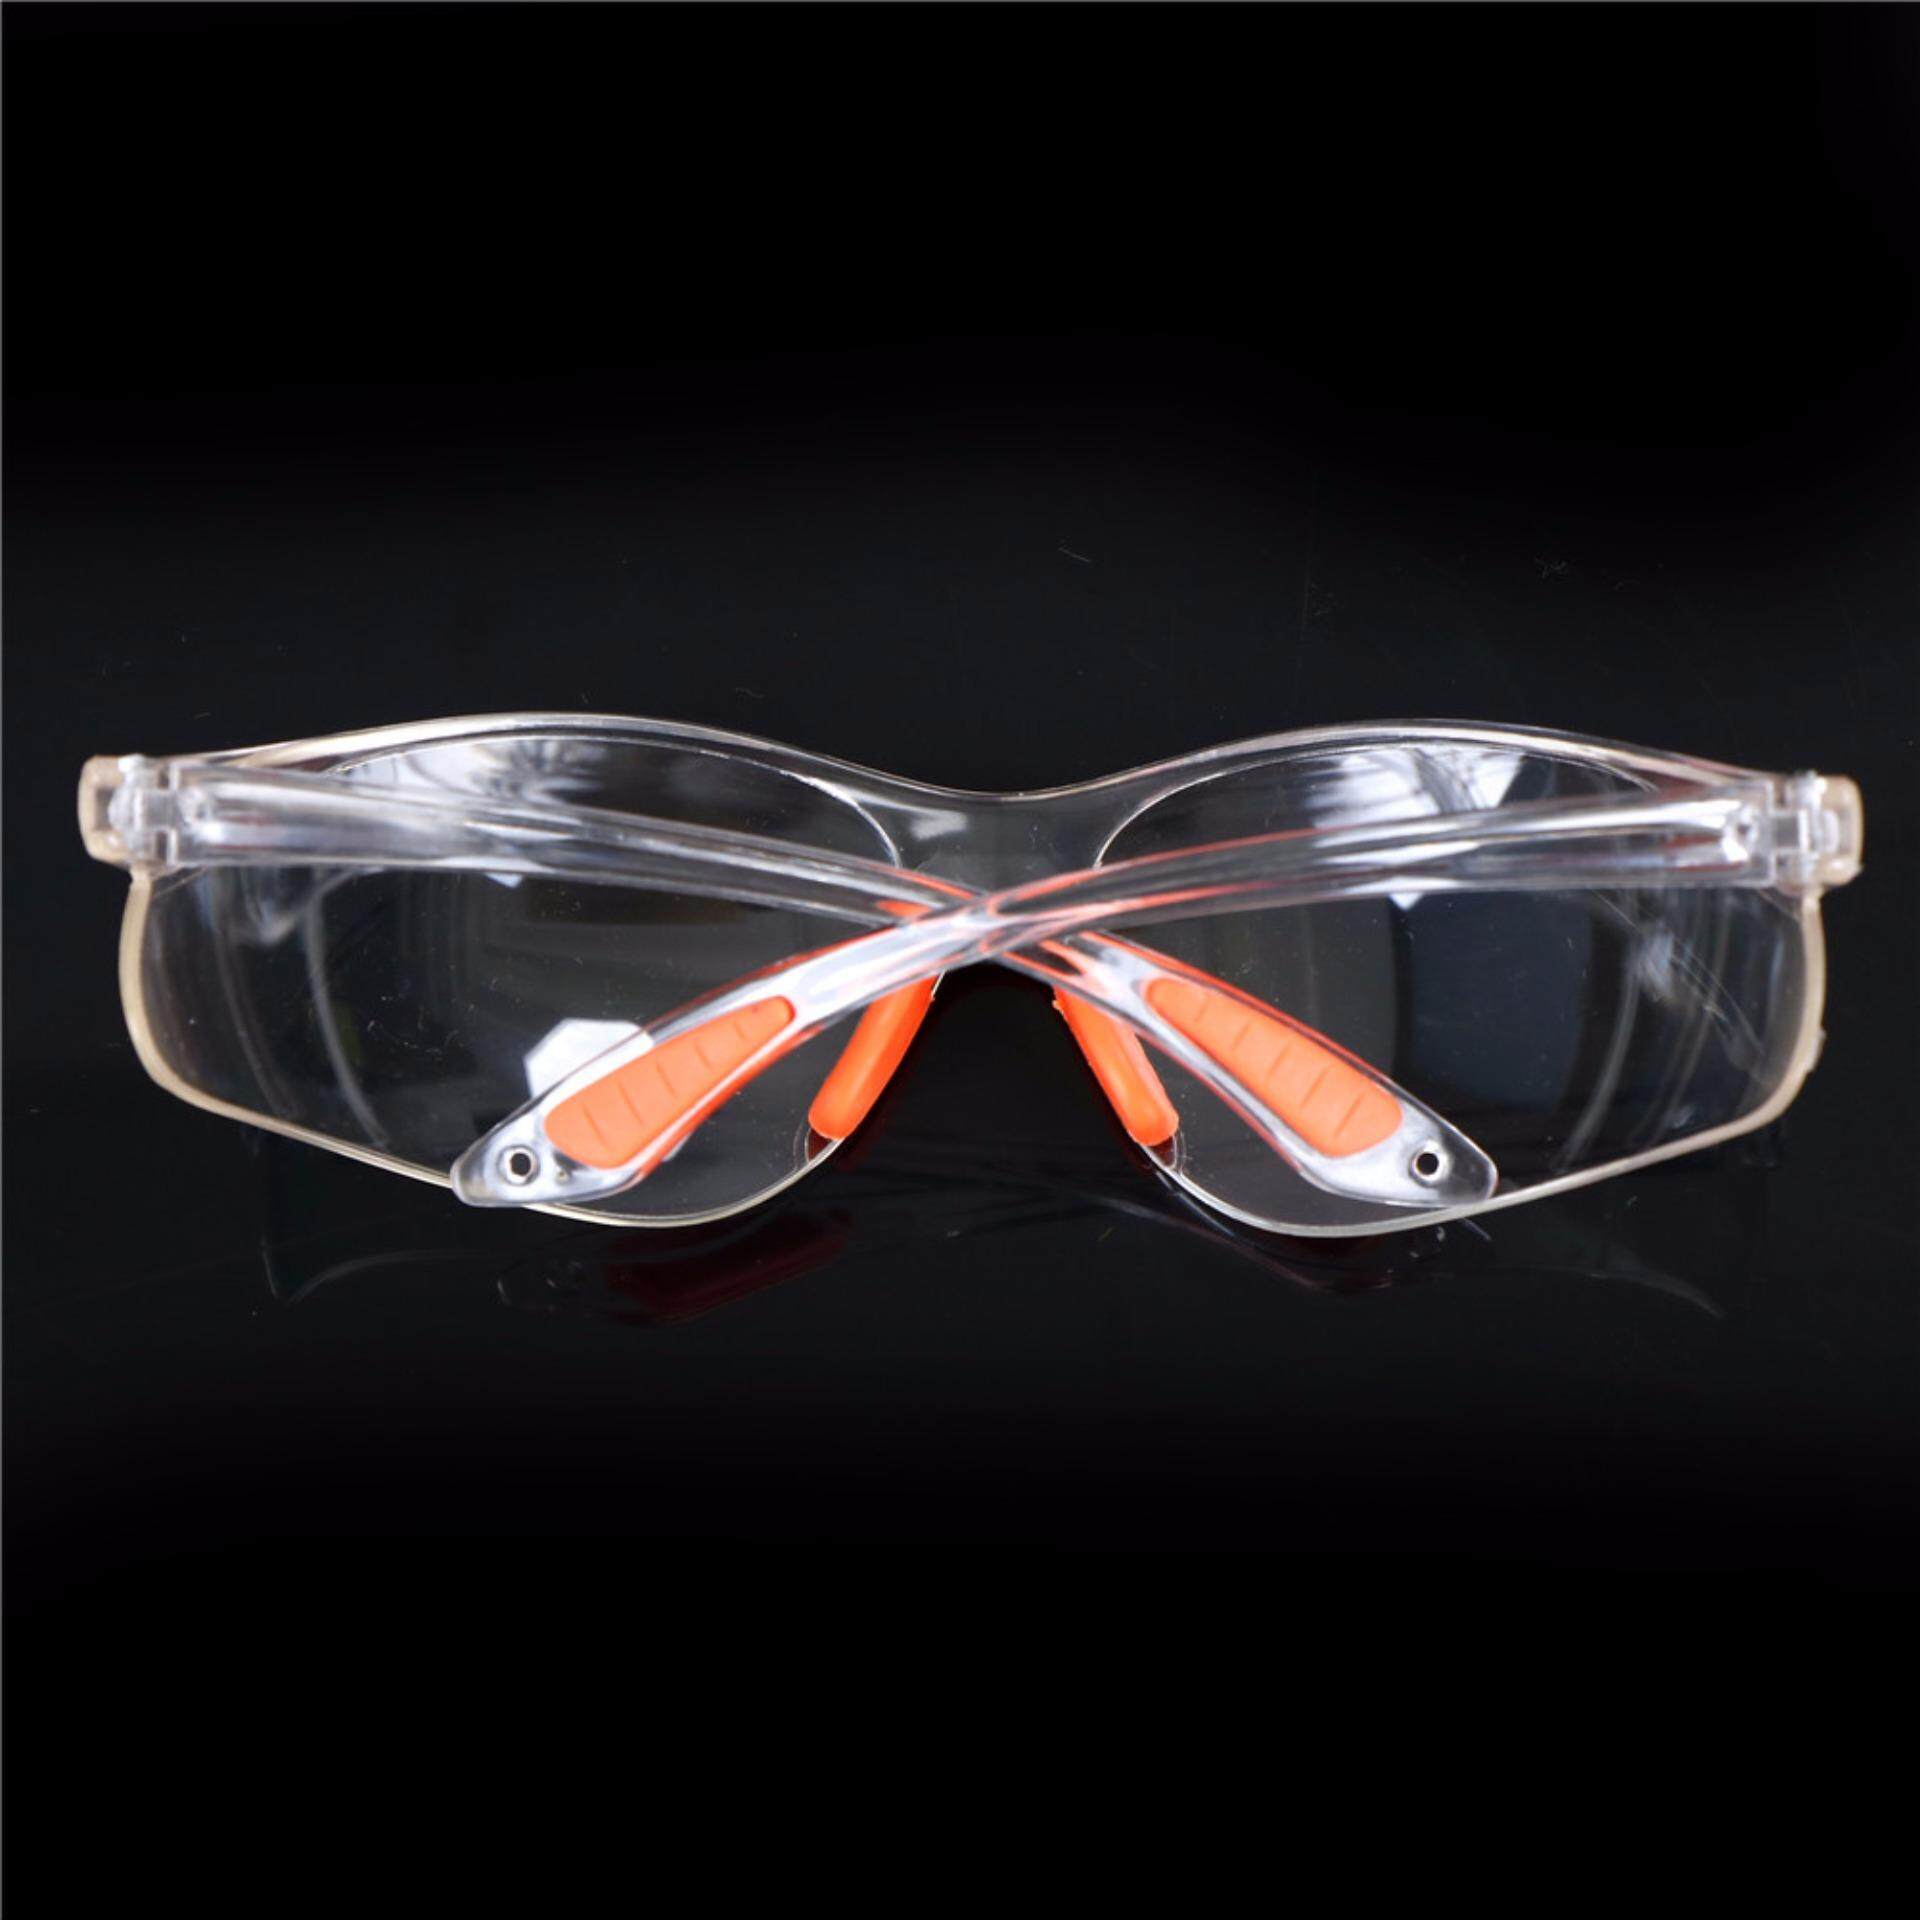 Vegoo Dustproof Security Goggles PC Eye Protector Safety Labor Glasses